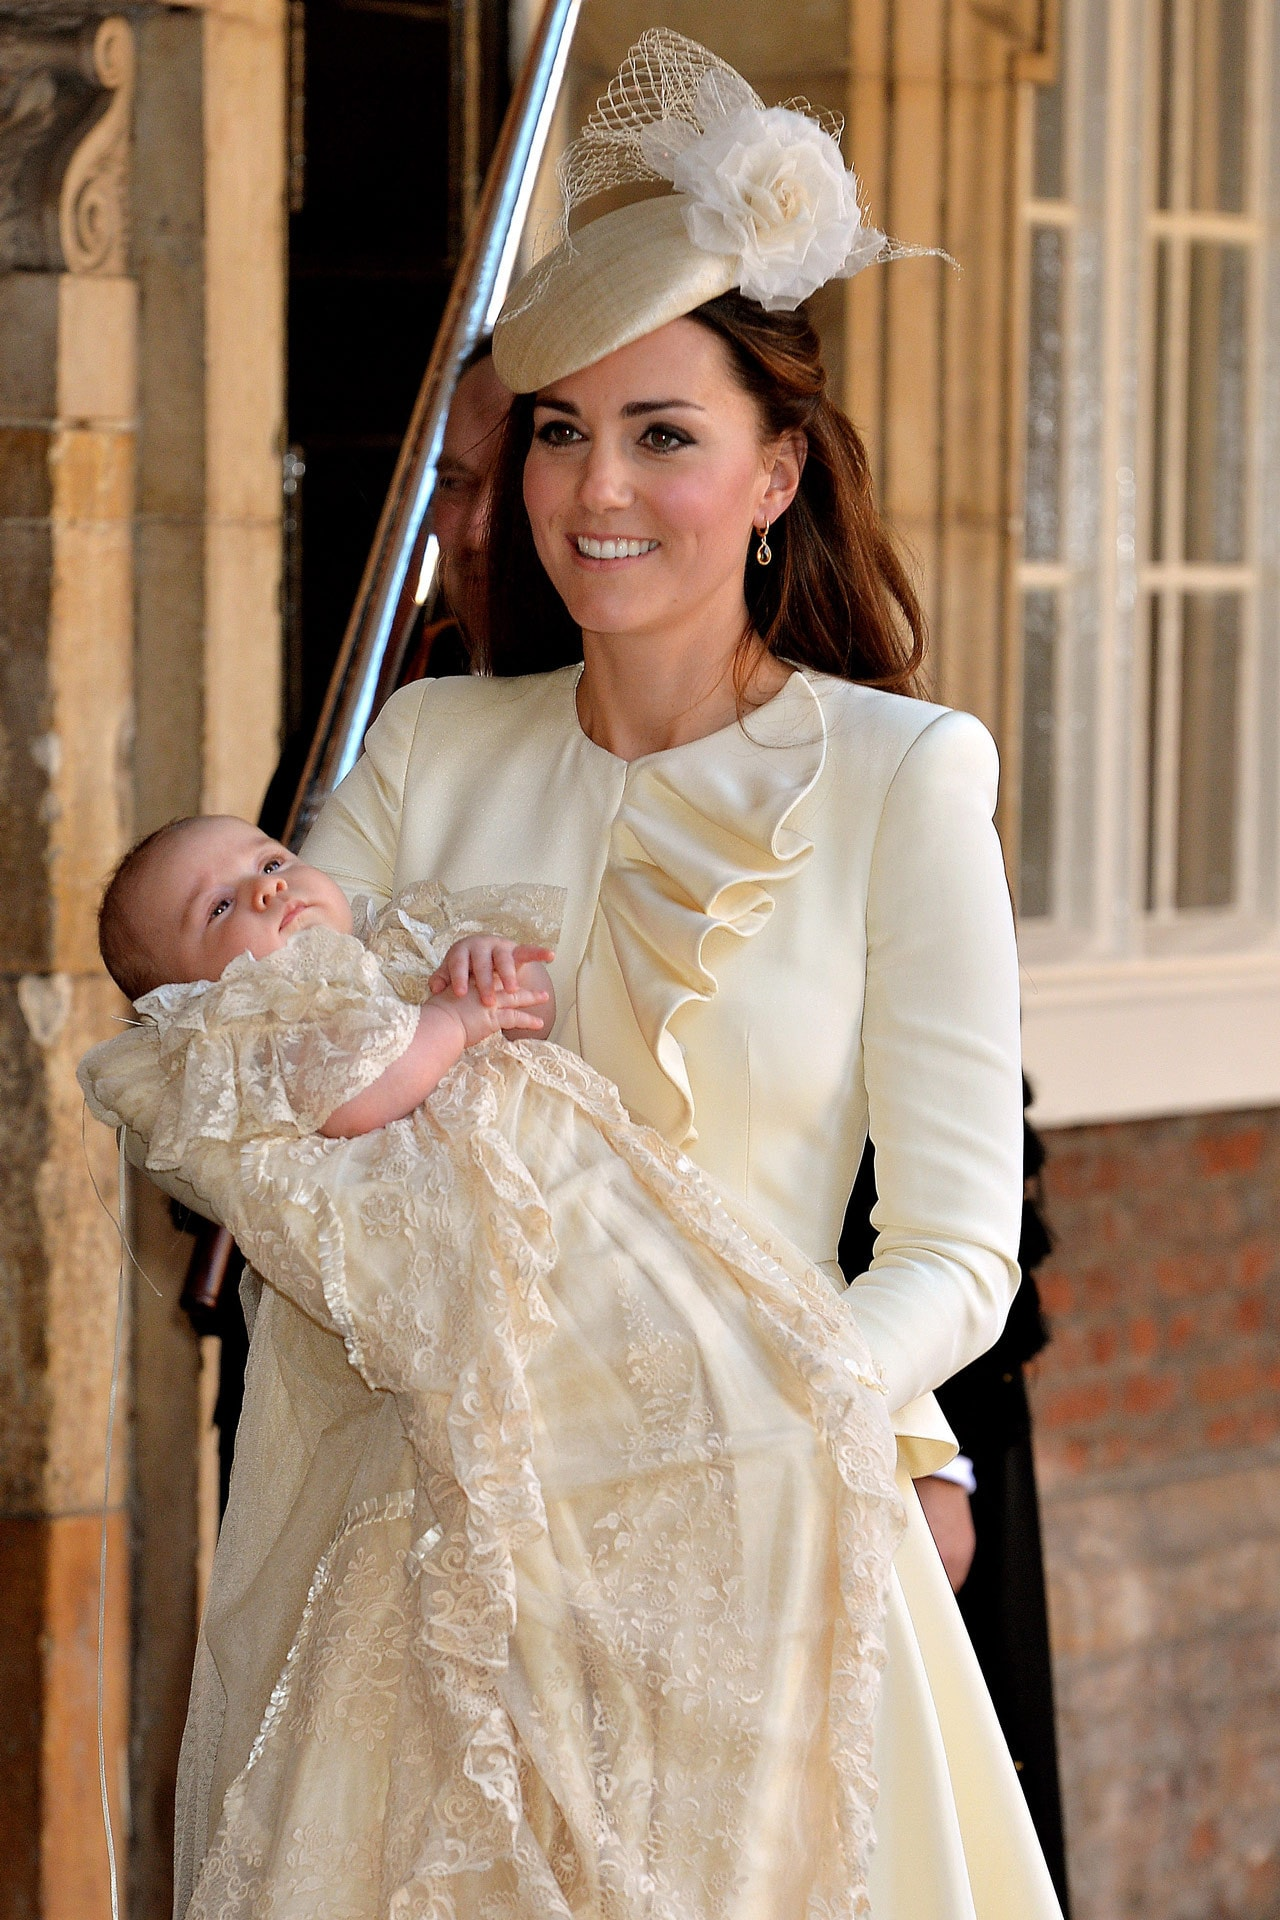 Kate Middleton at Prince George's christening. Image credit: Getty Images